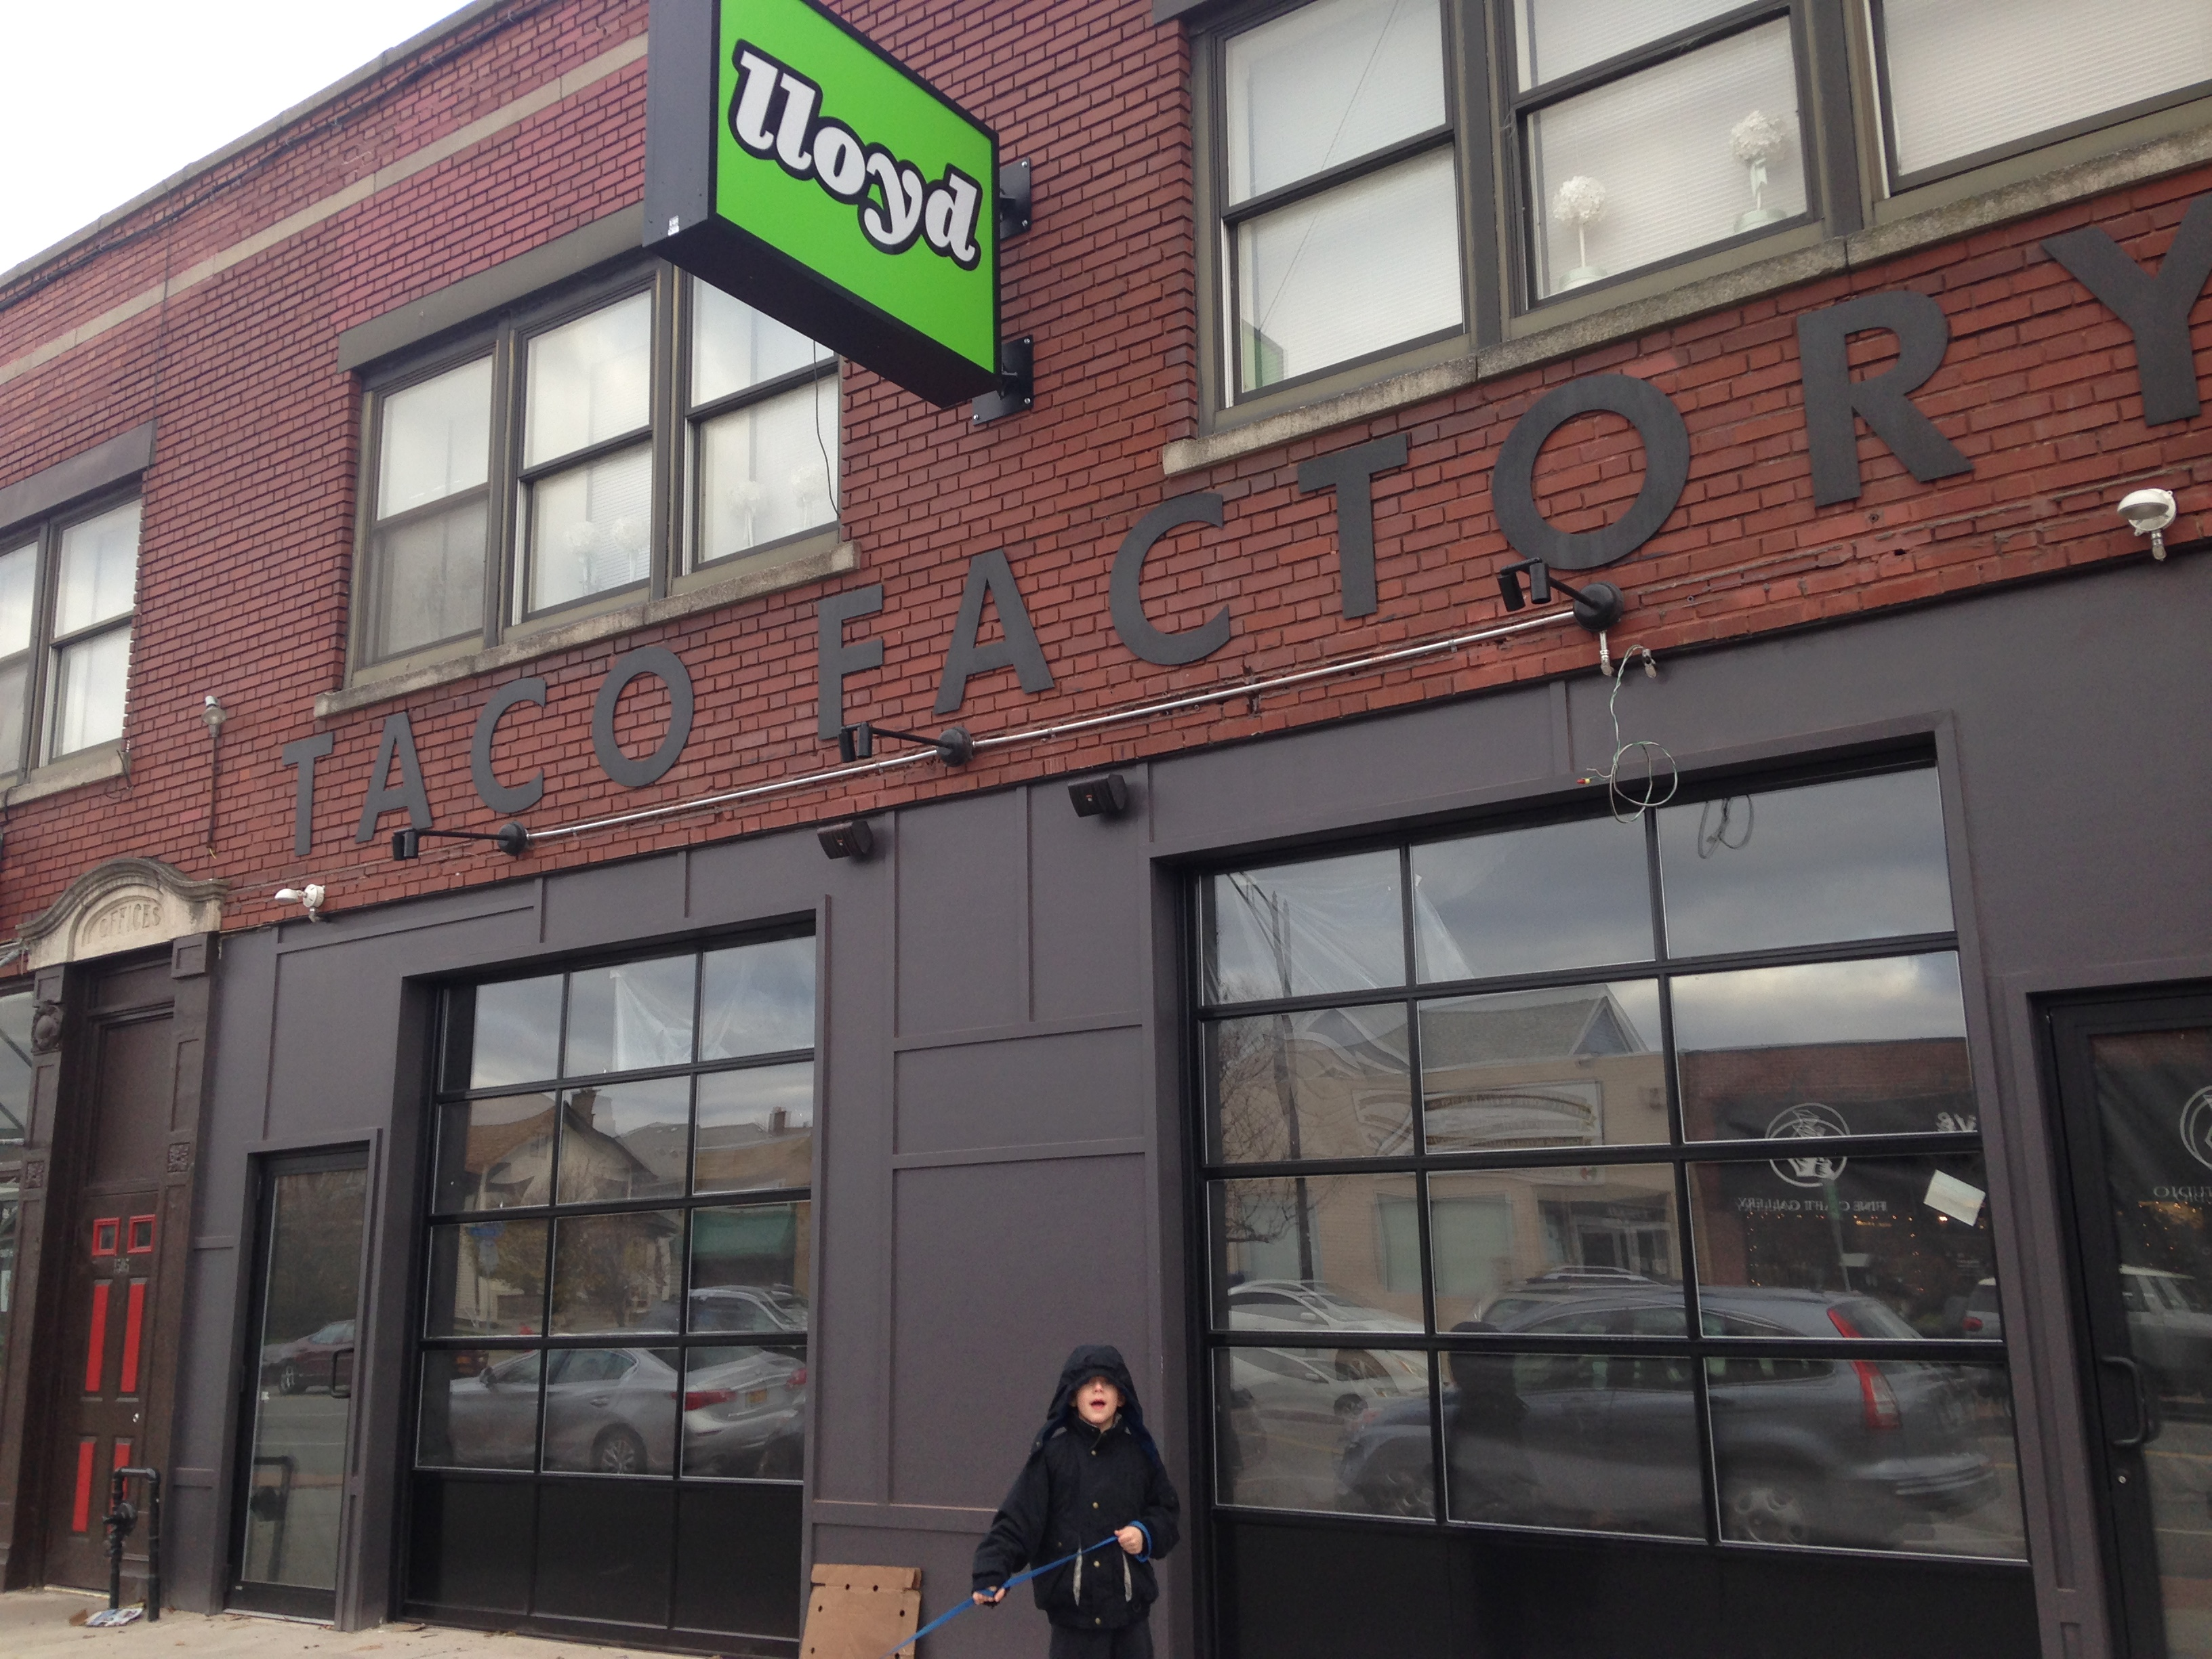 Lloyd Taco Factory, 1503 Hertel Ave., had planned to open Saturday but now says it will open Monday. (Melinda Miller/Buffalo News)